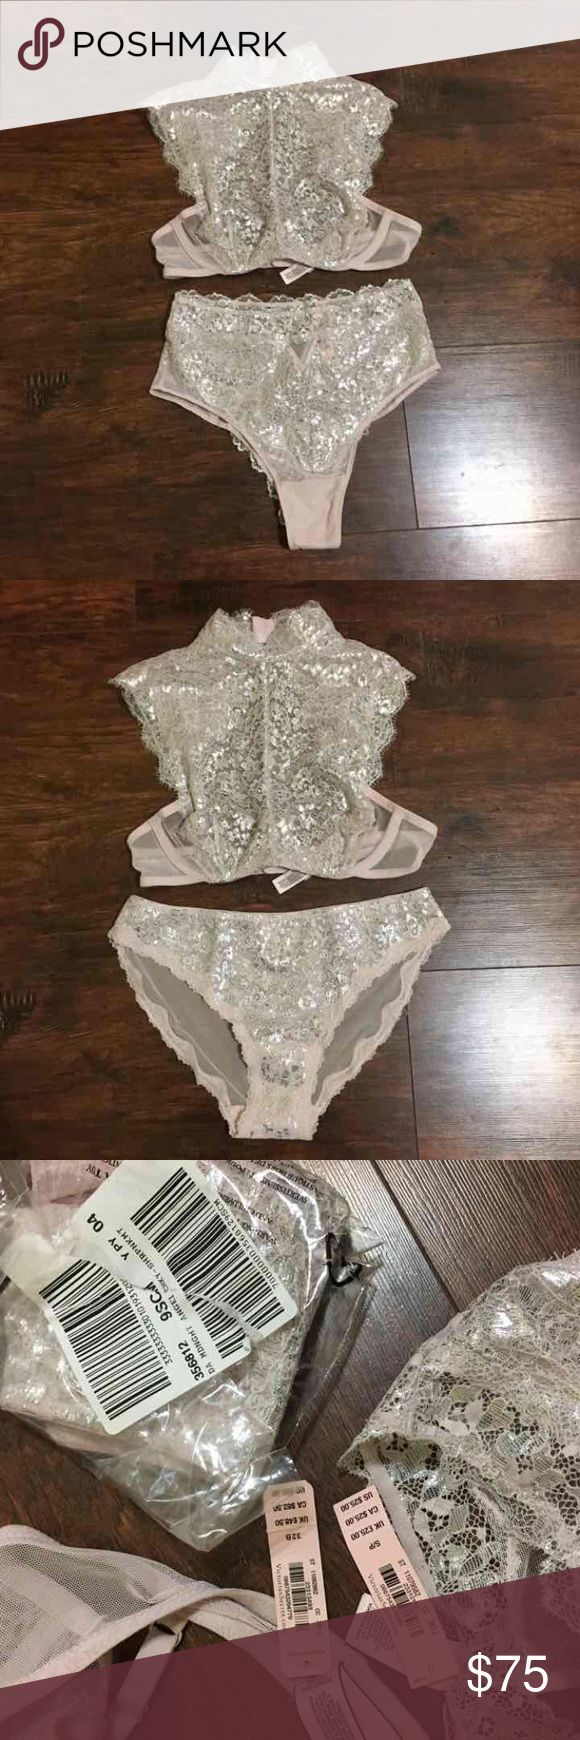 Victoria secret lingerie set All new with tags. Metallic. Dream angels wicked line. Underwear is a medium and small. Bra is 32B Victoria's Secret Intimates & Sleepwear Bras